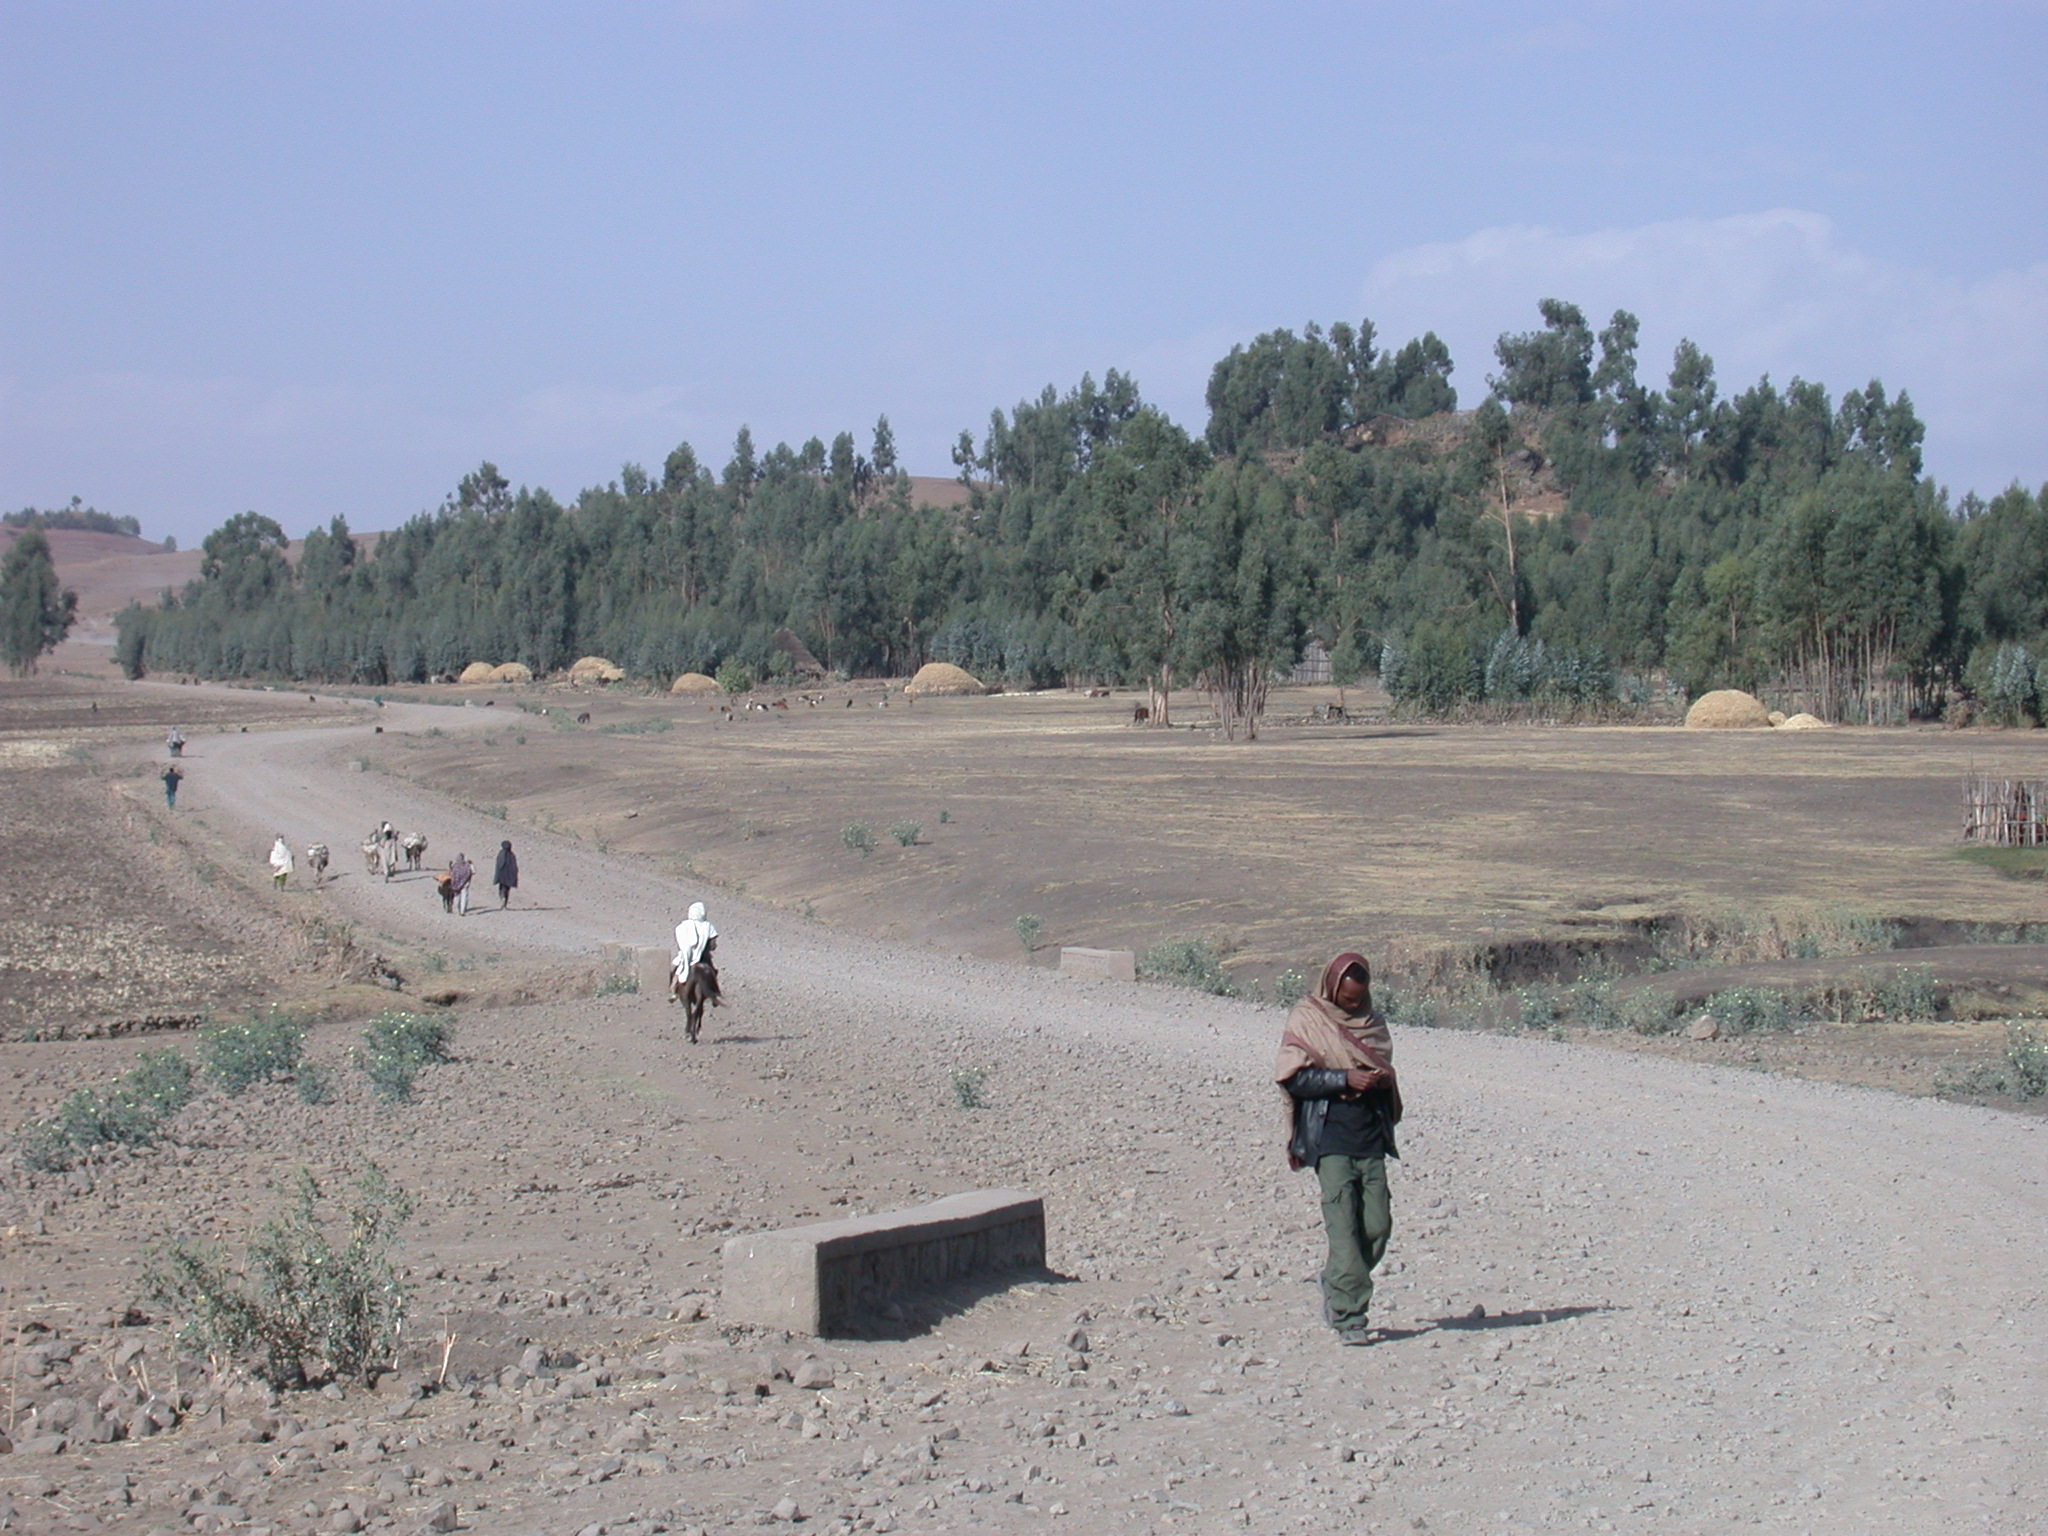 Village at Site of Bus Breakdown, Route From Gonder to Debark, Ethiopia